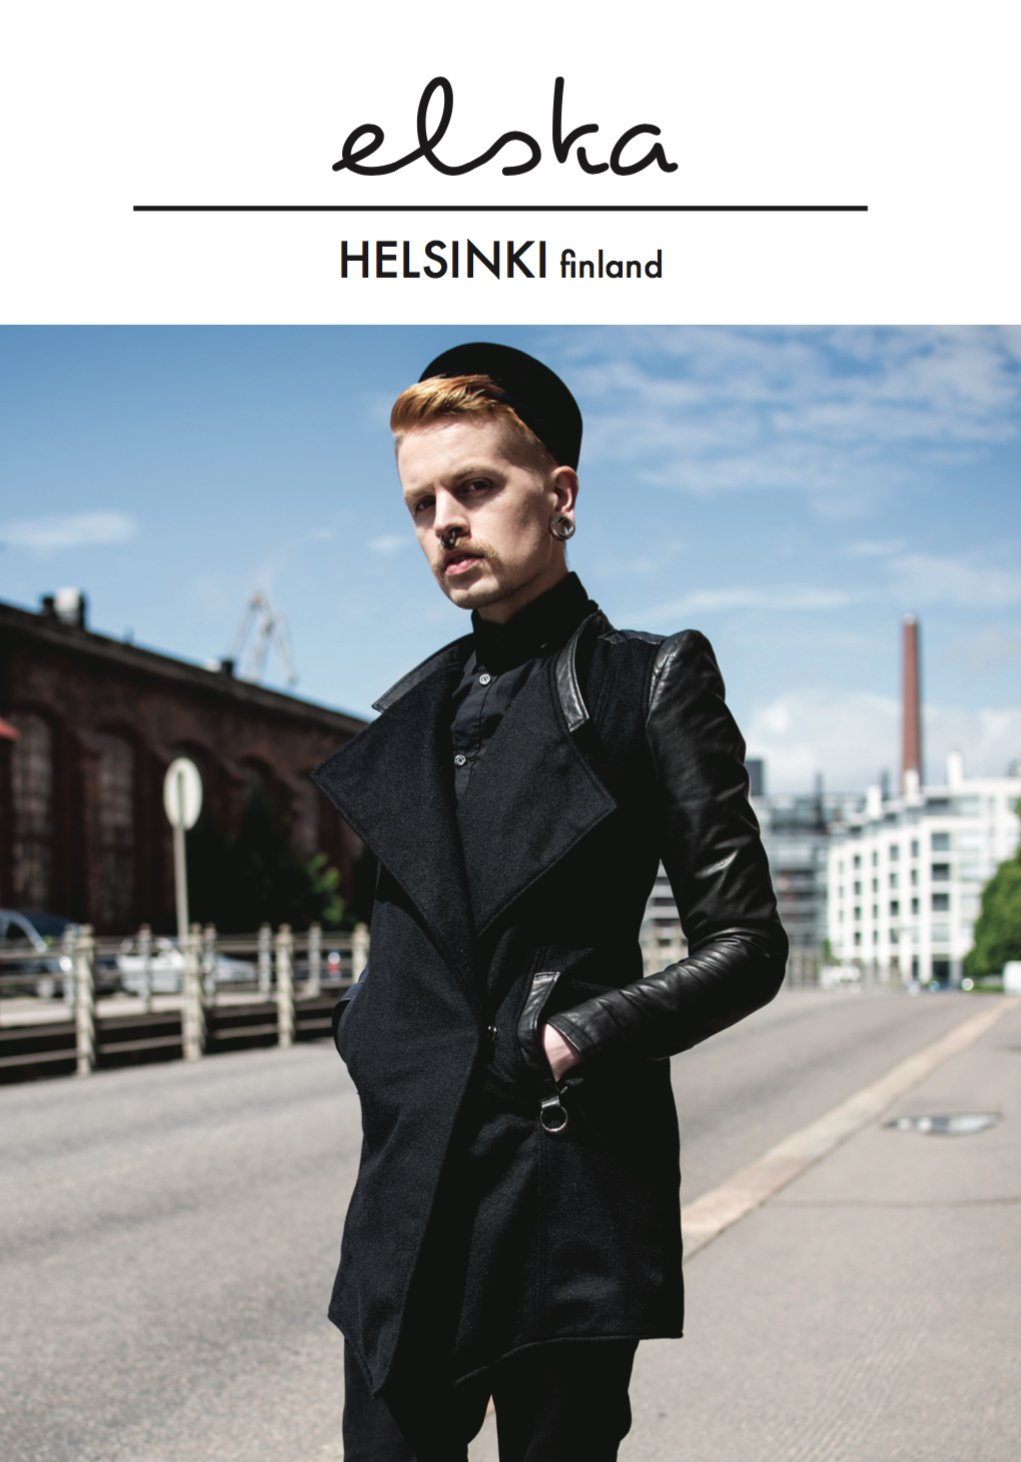 Helsinki Men Finnish First In New Issue Of Gay Travel Magazine - NewNowNext